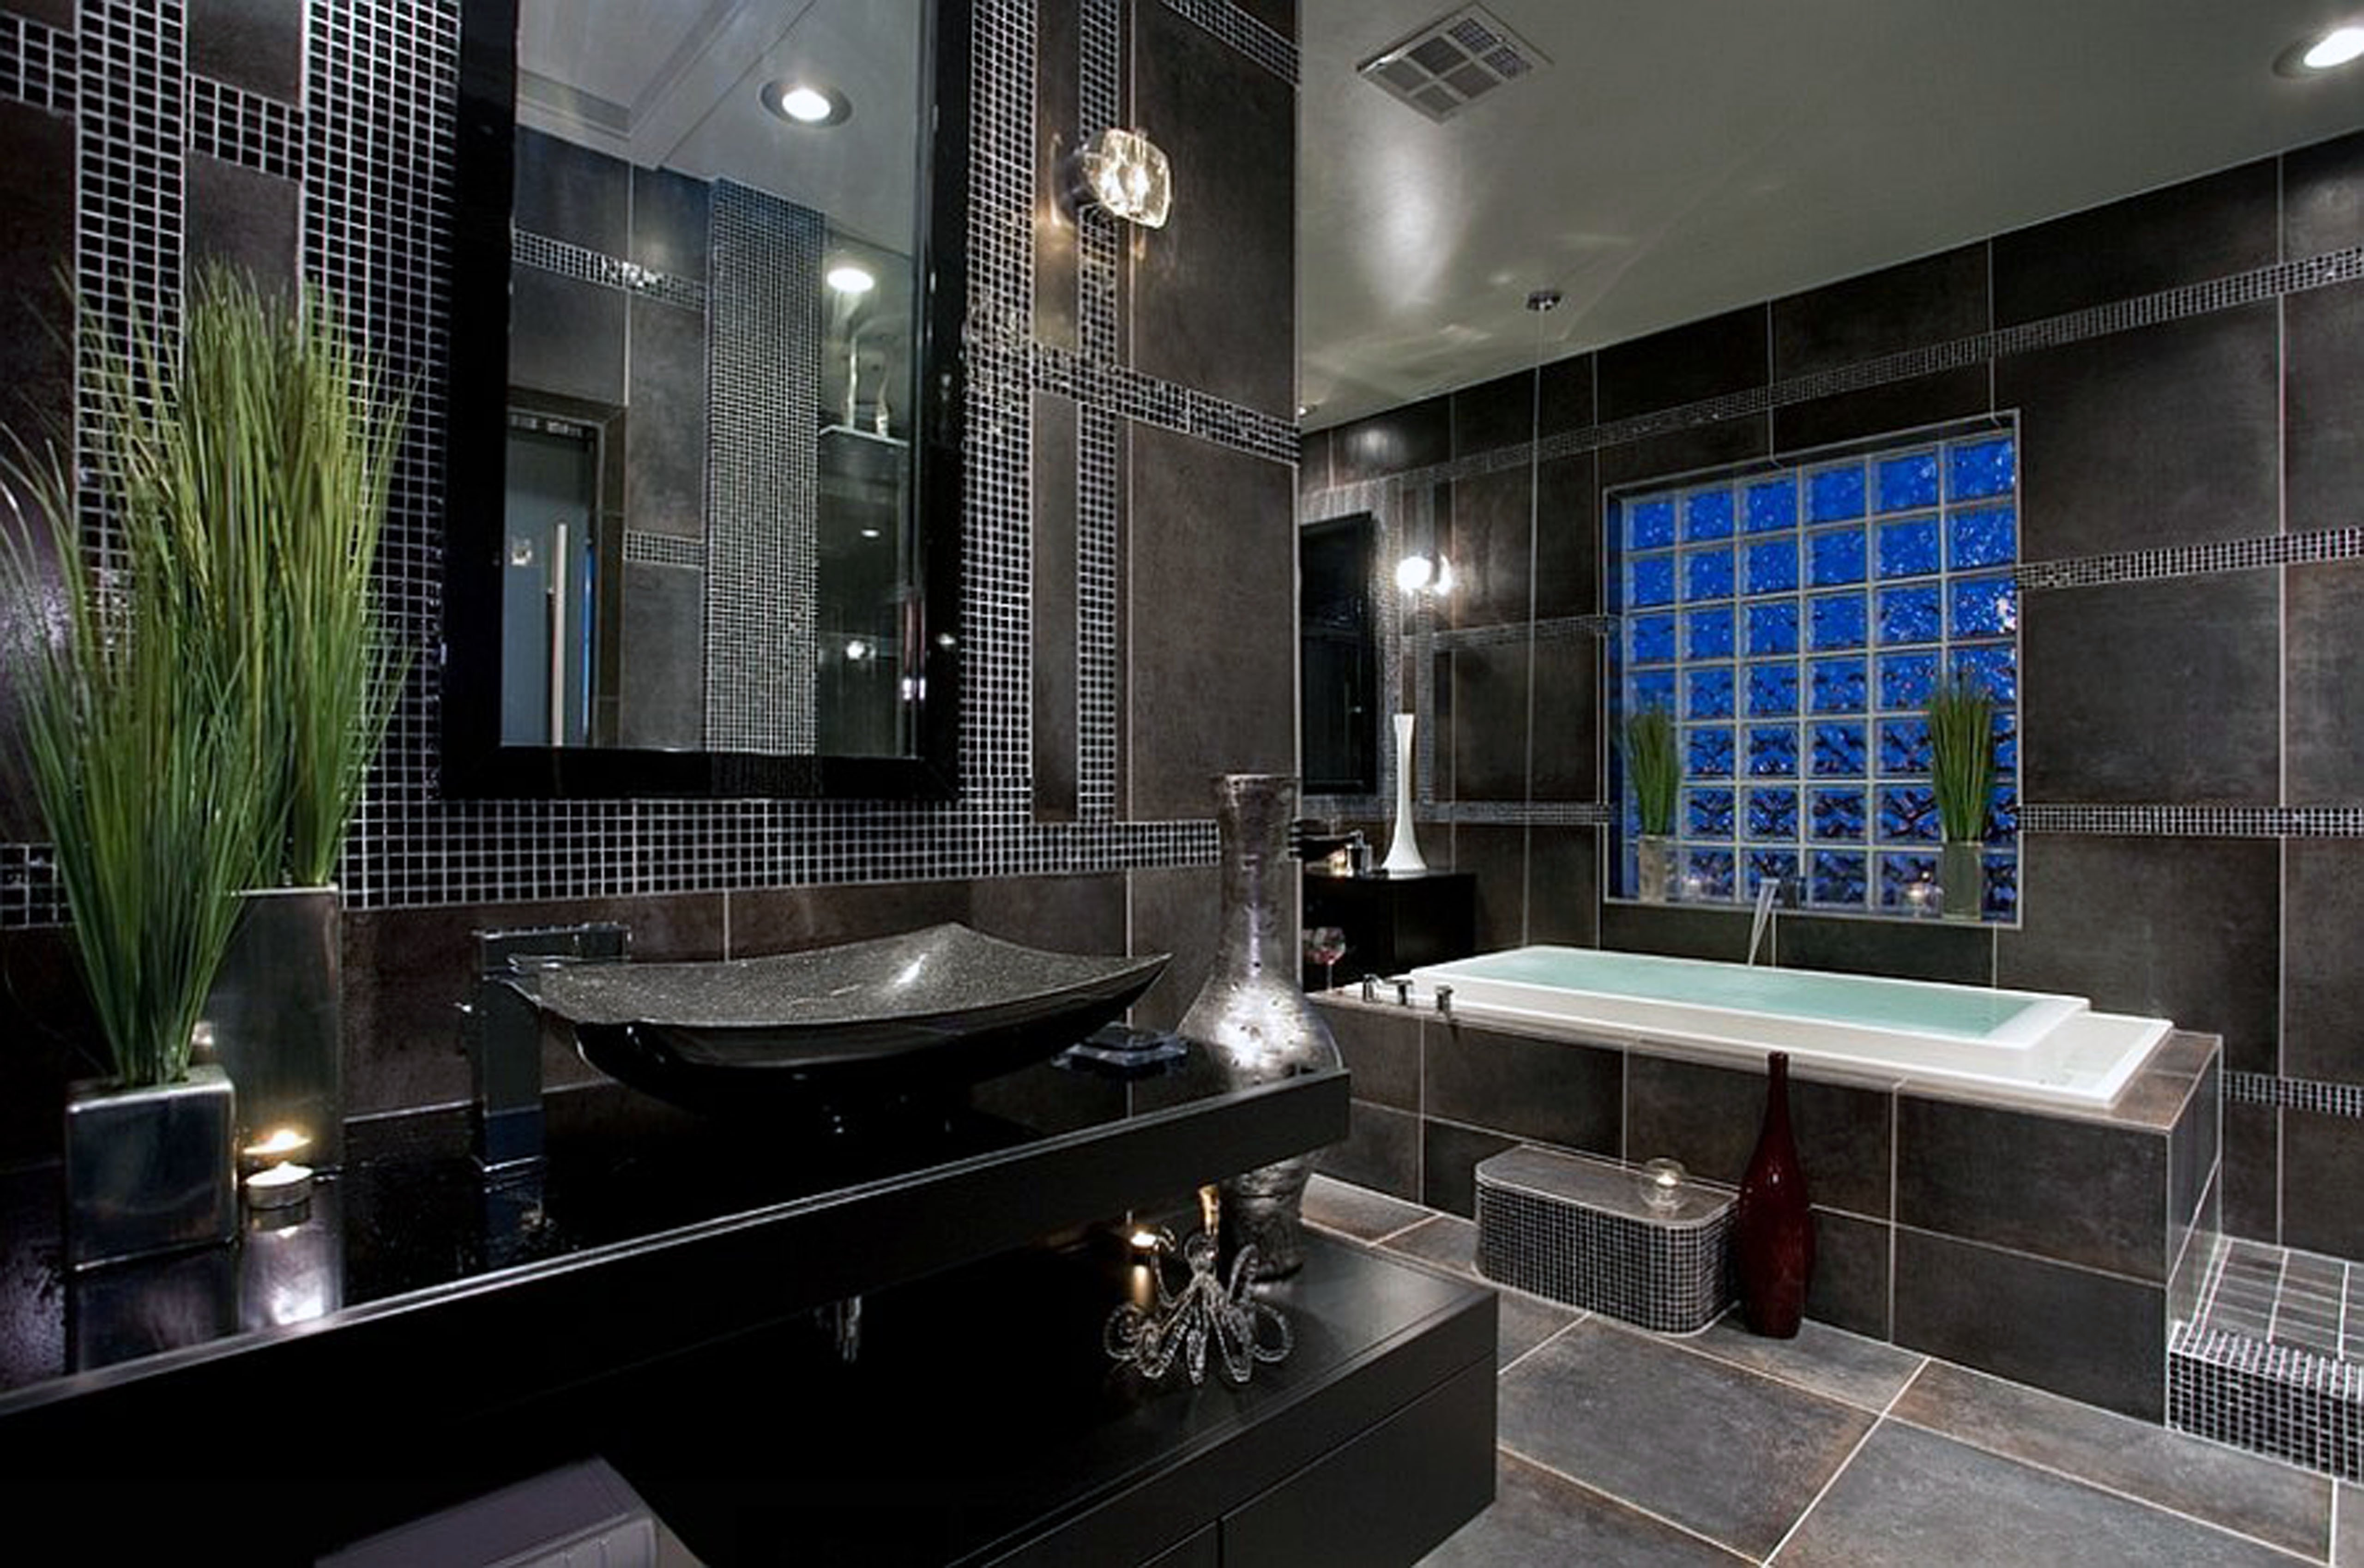 Black and Gray Bathroom Decor Awesome 30 Amazing Ideas and Pictures Of Antique Bathroom Tiles